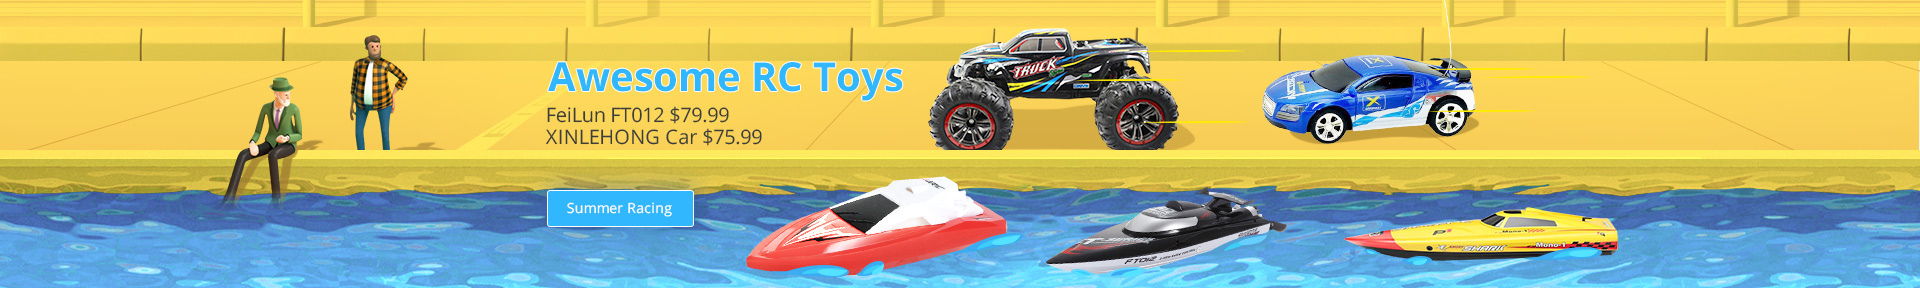 Remote Control Toys - Best RC Toys & Accessories Online Sale